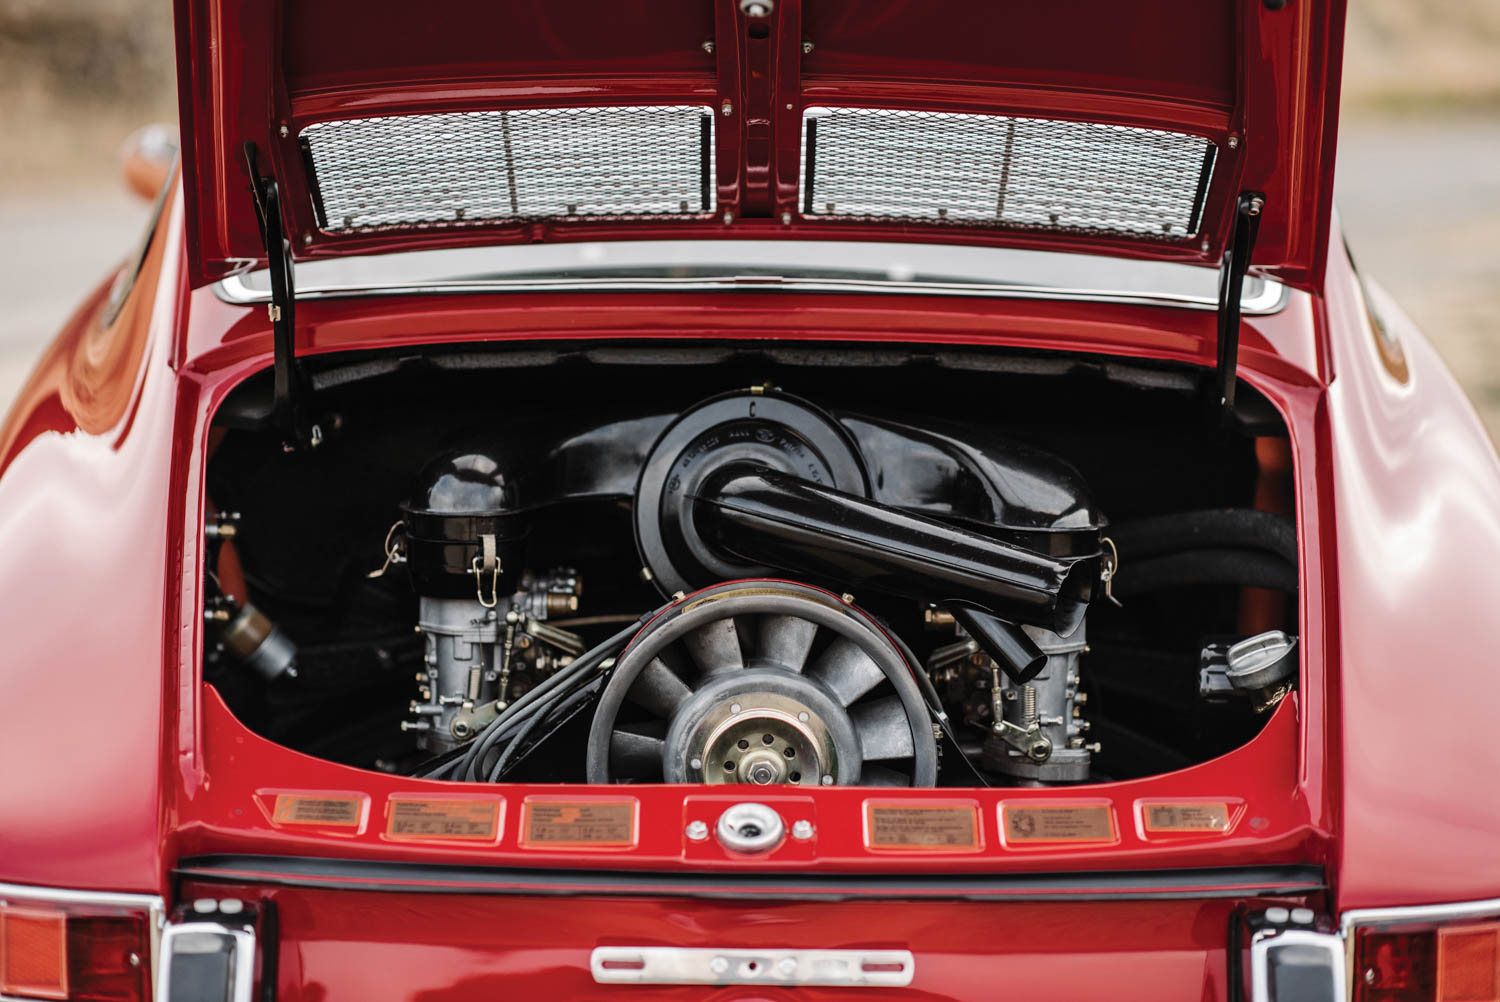 1967 Porsche 911 S Coupe engine